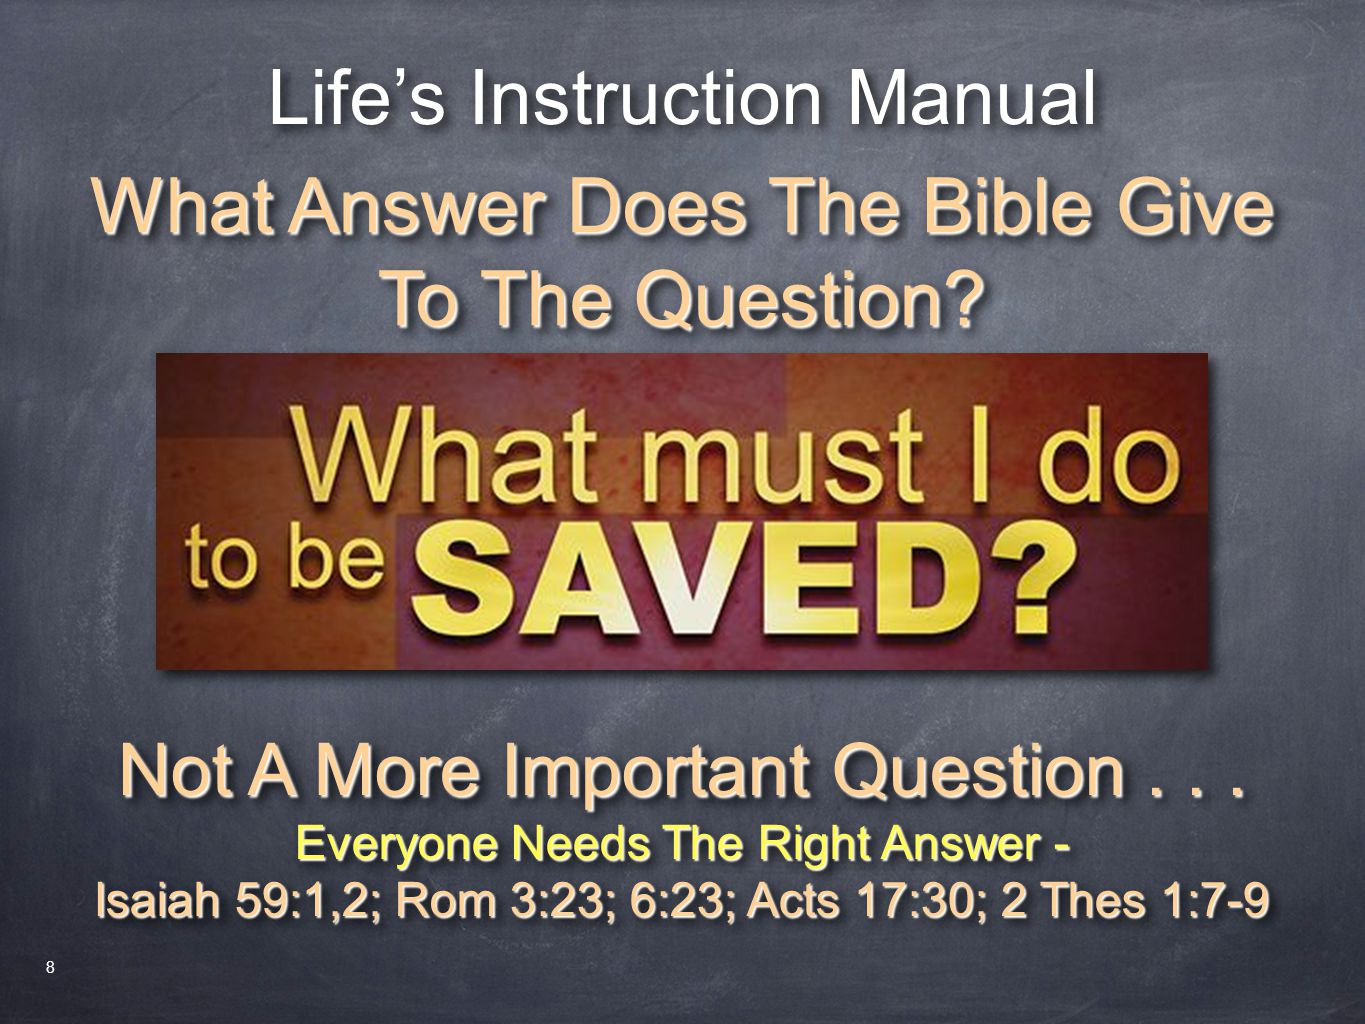 Life's Instruction Manual What Answer Does The Bible Give To The Question? Not A More Important Question... Everyone Needs The Right Answer - Isaiah 5